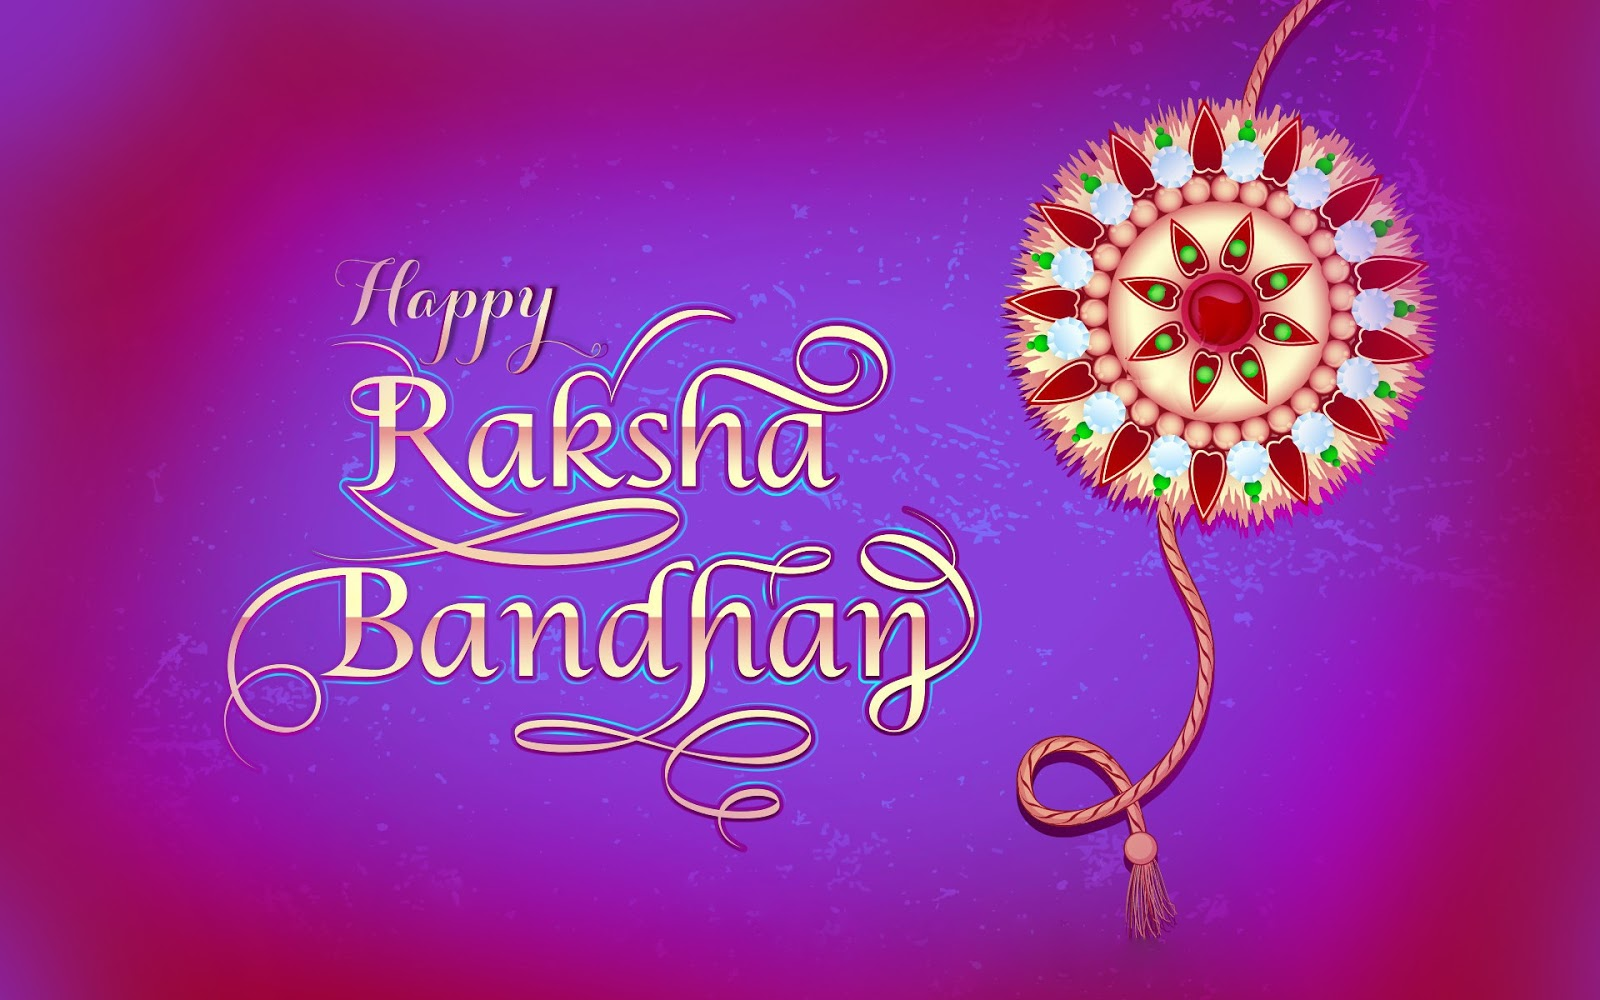 Happy Raksha Bandhan 2018 Images Pictures Wishes Quotes Hd Wallpapers